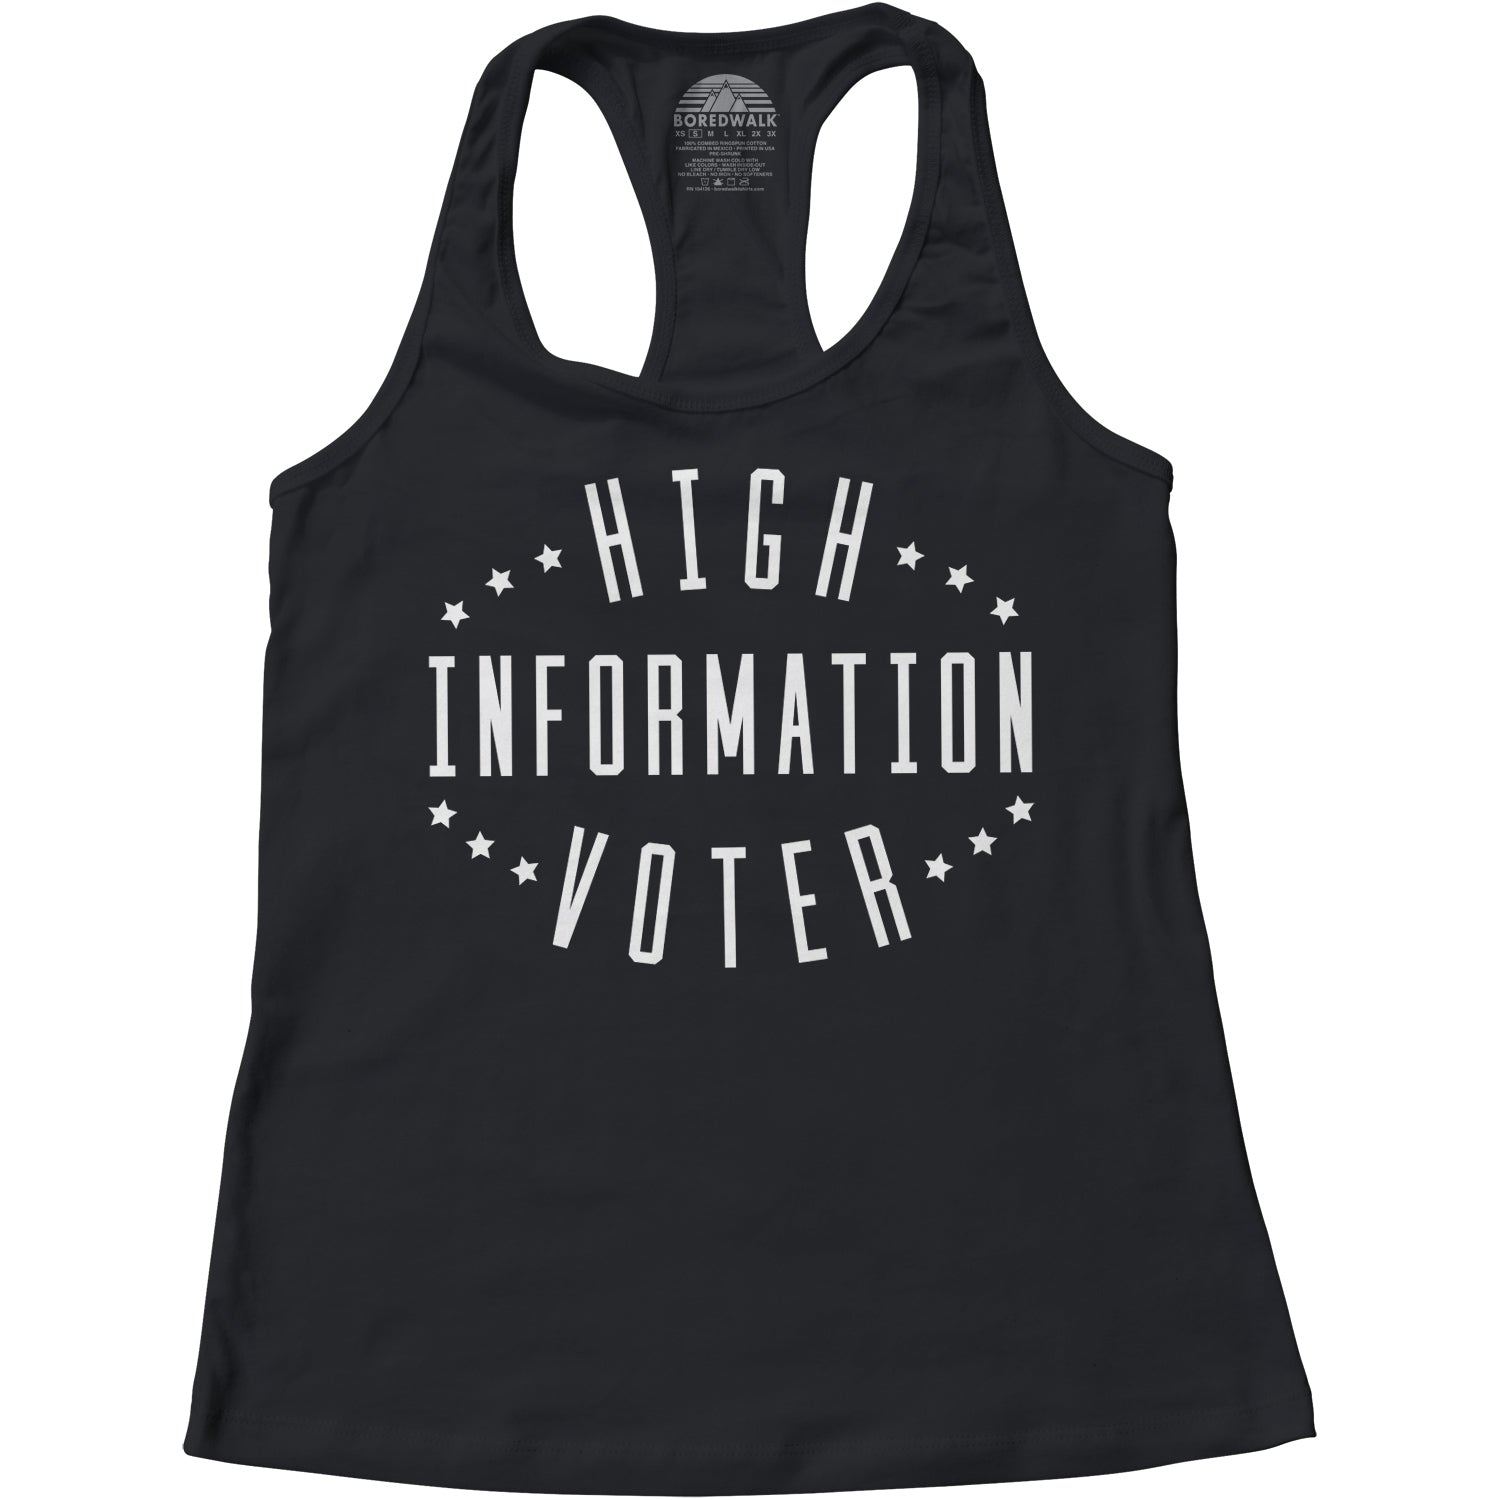 Women's High Information Voter Racerback Tank Top